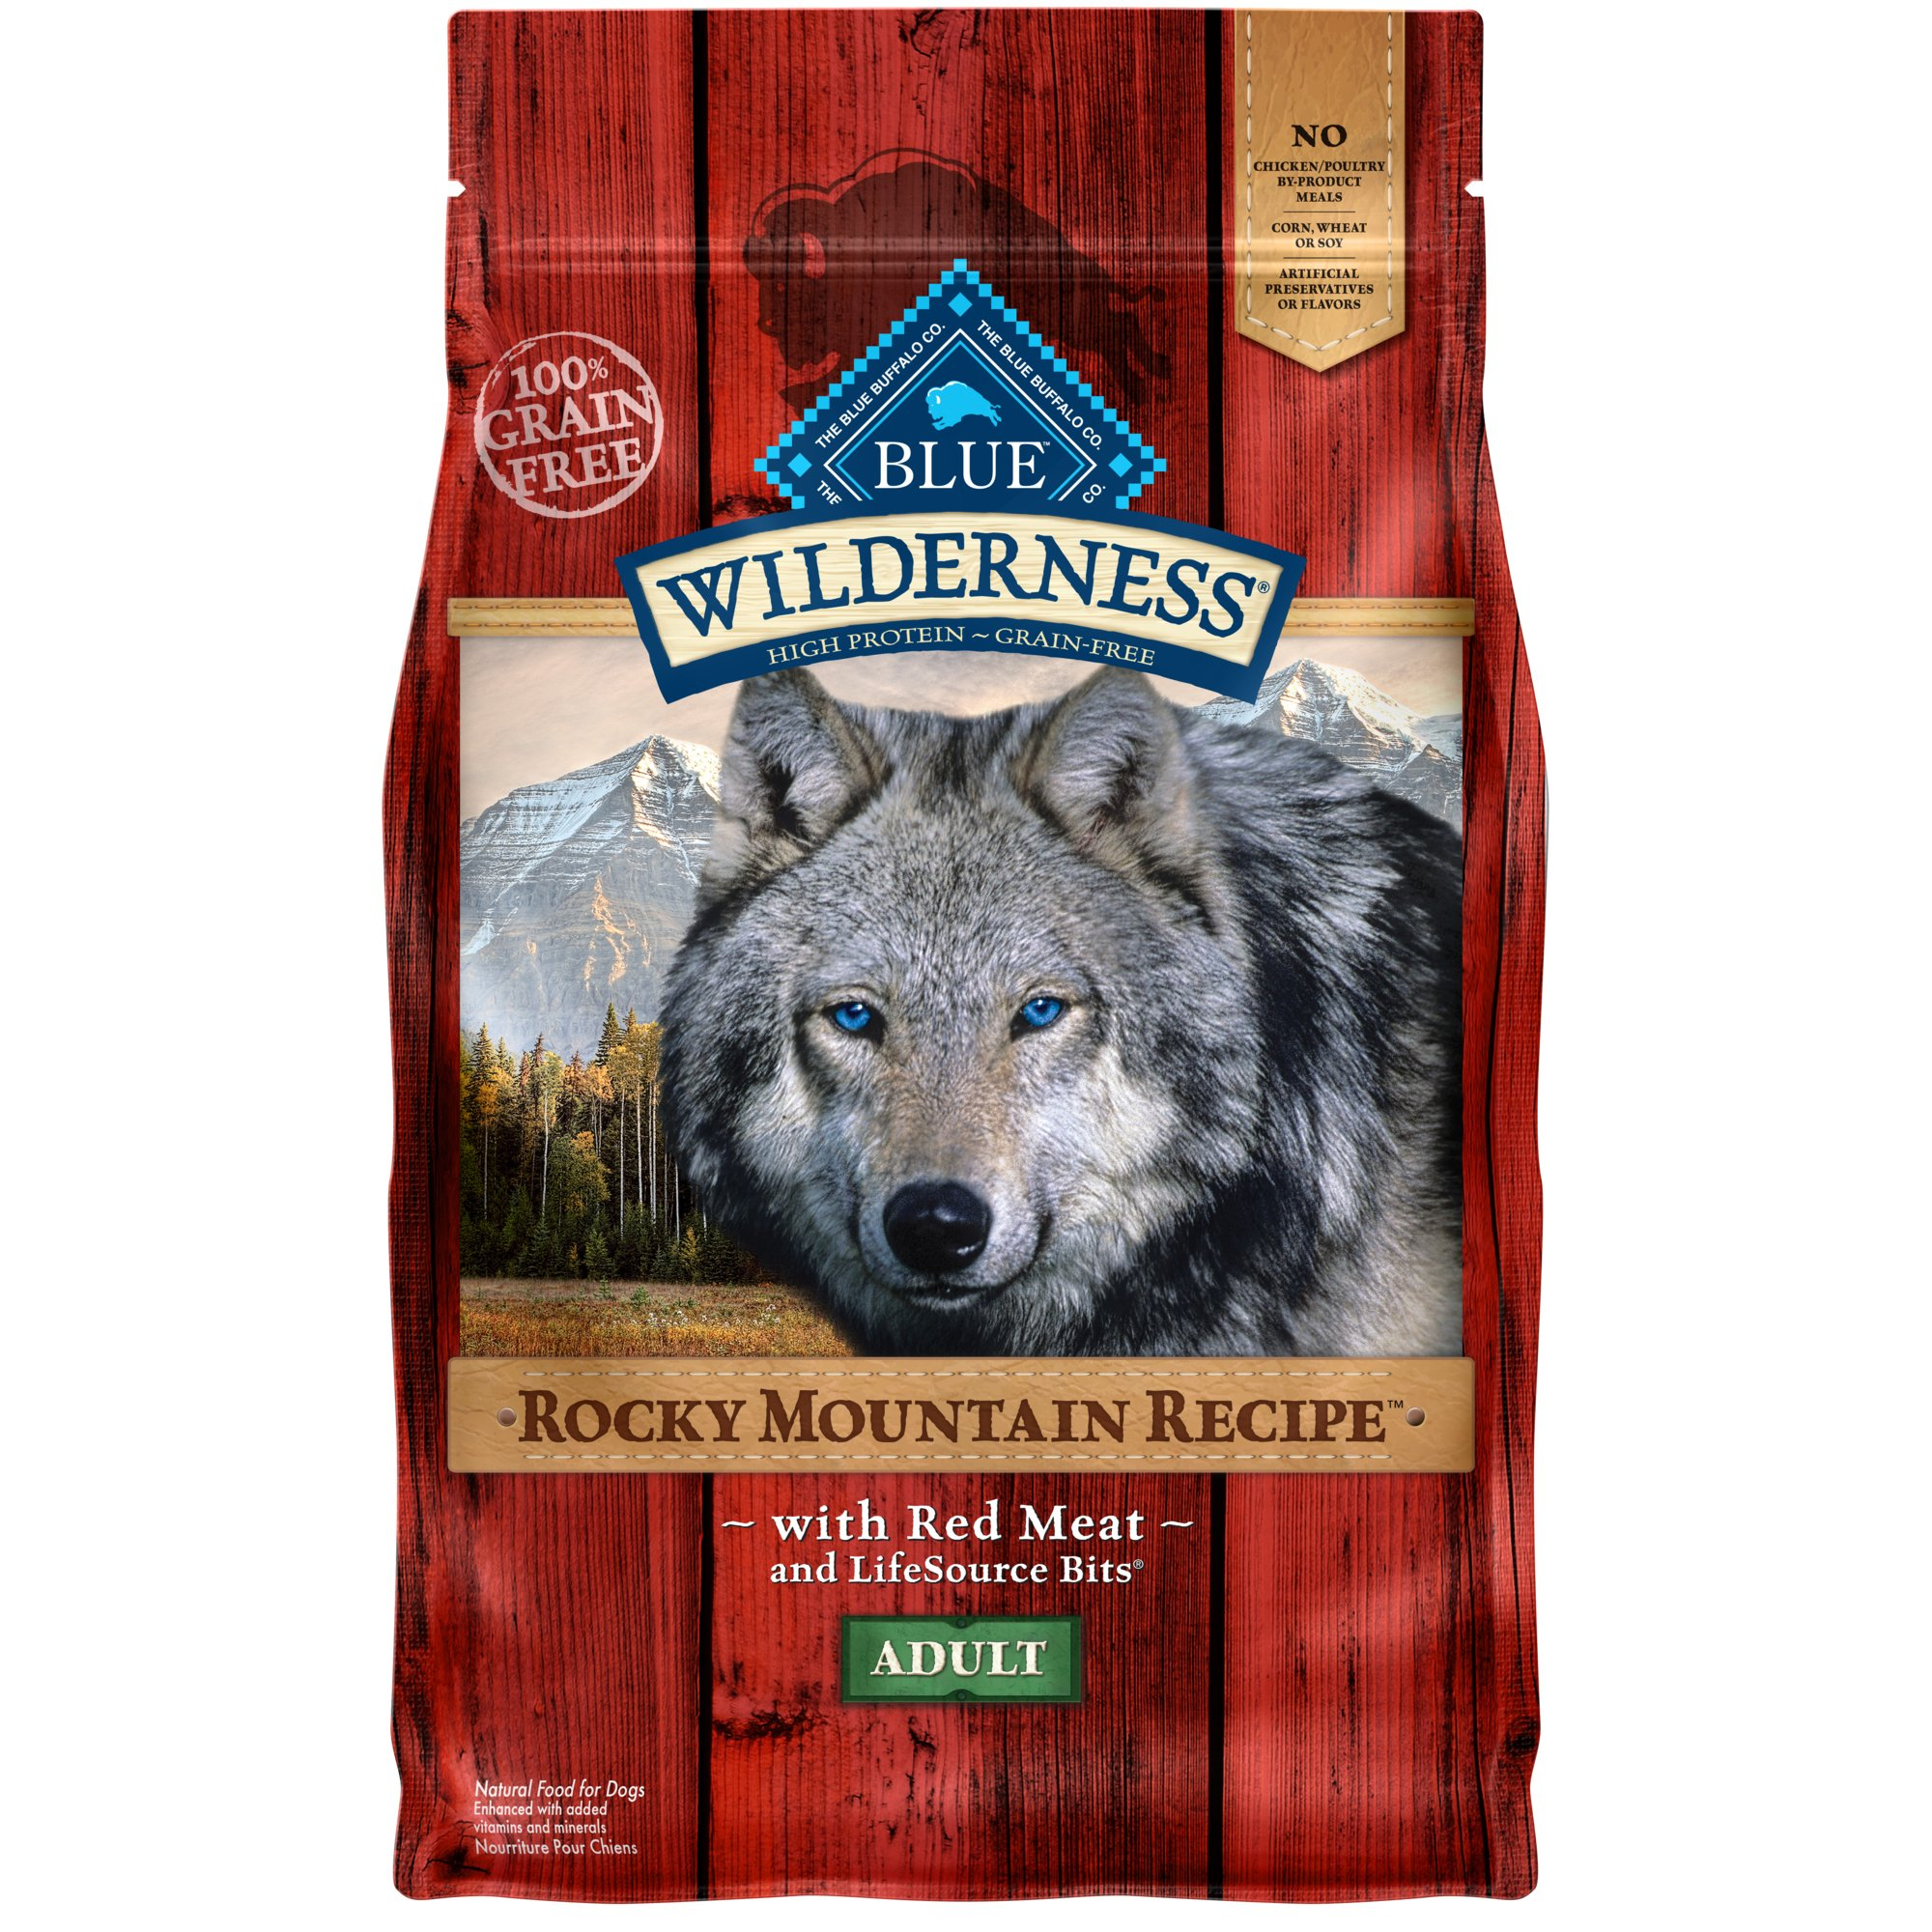 Blue Buffalo Wilderness Rocky Mountain Recipe with Red Meat Adult Dog Food